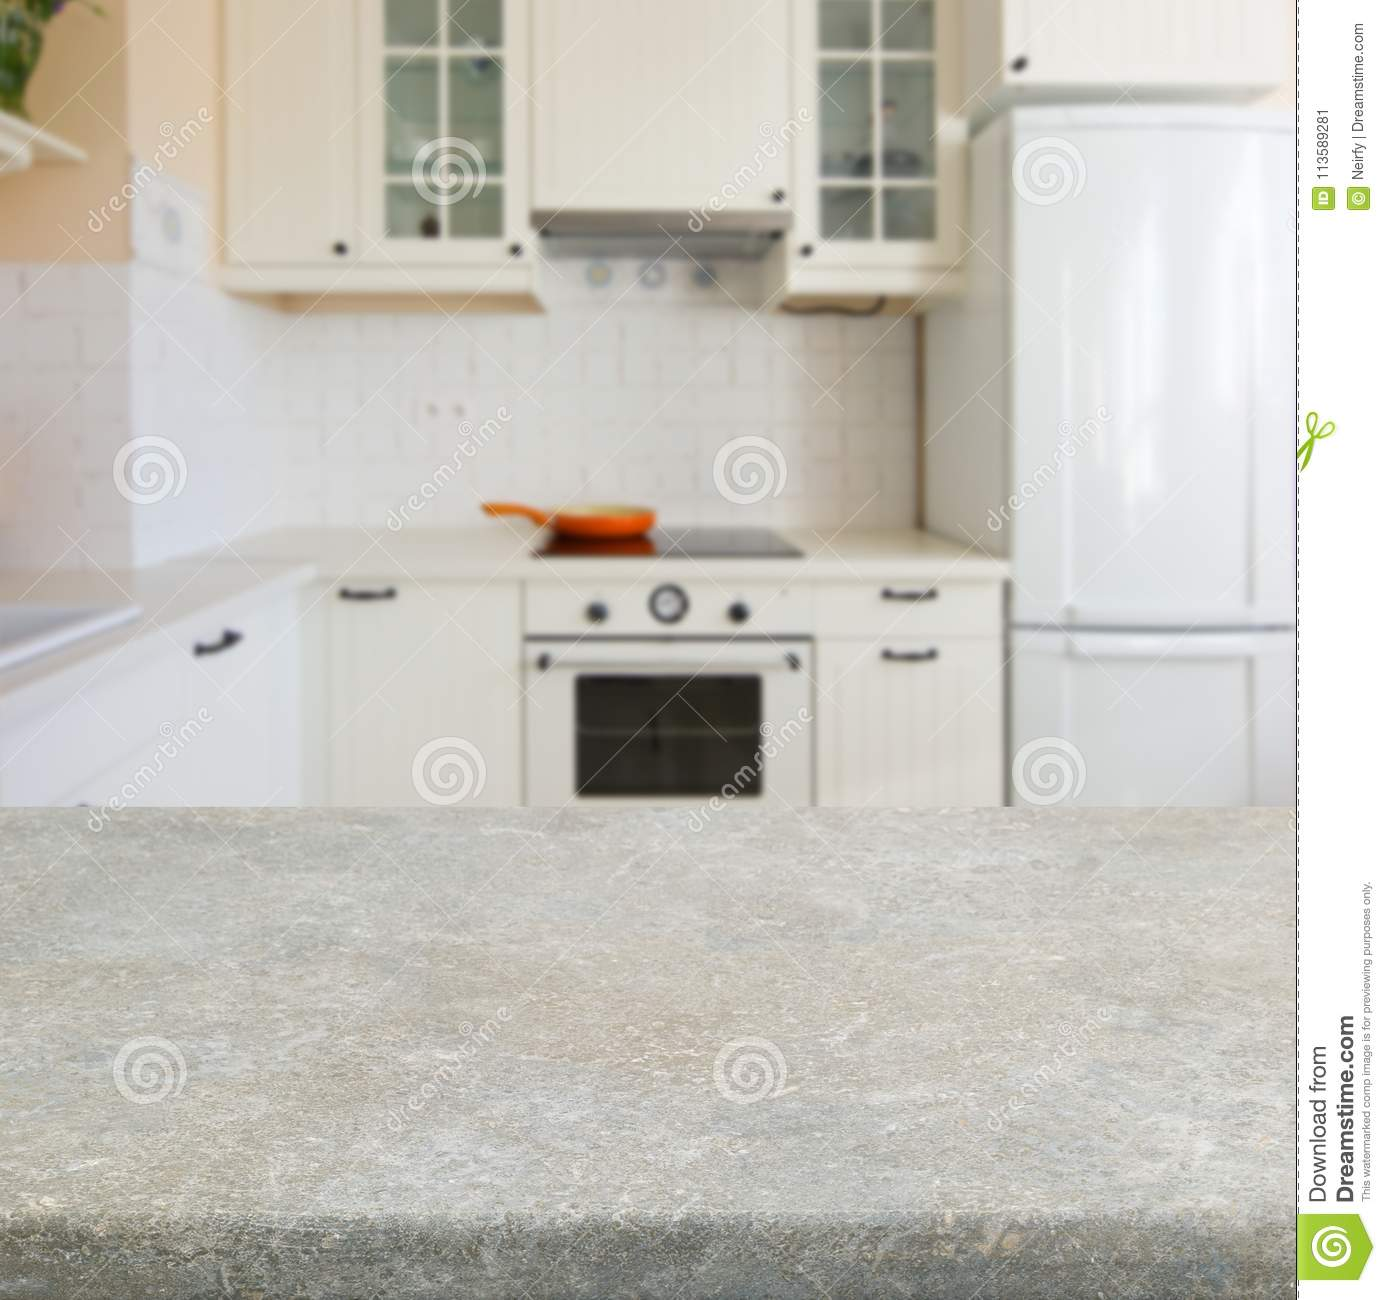 Kitchen Table Top Stock Image Image Of Lifestyle Light 113589281